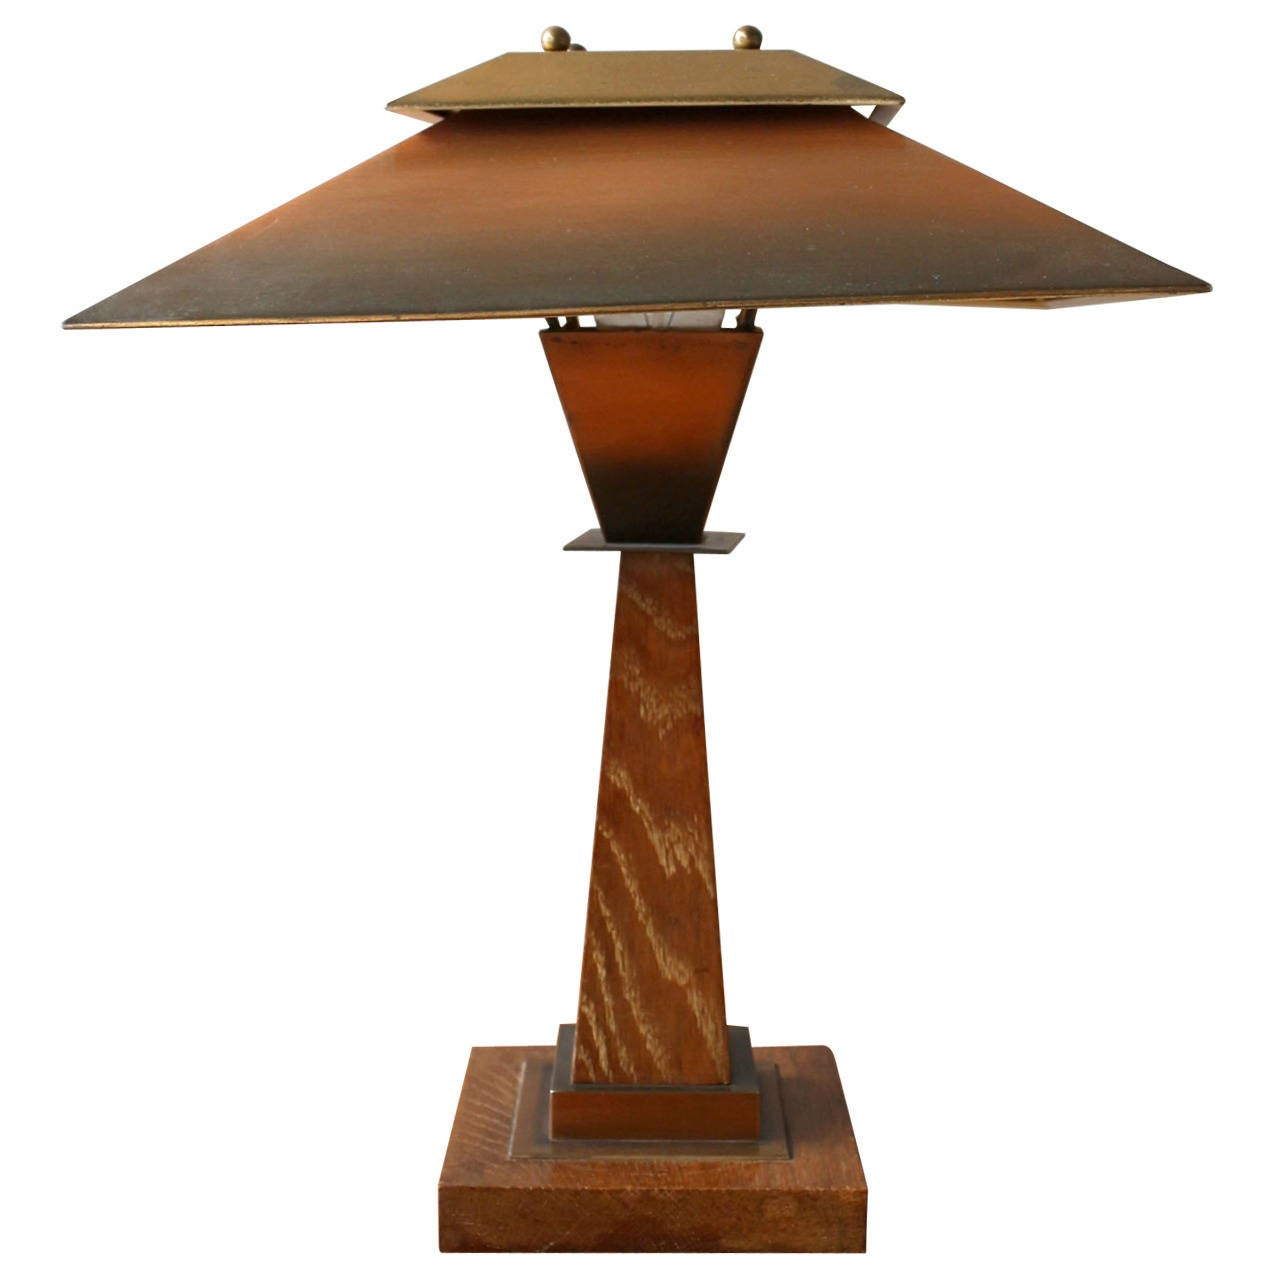 French Art Deco Oak and Copper Table Lamp by Emile Jacot